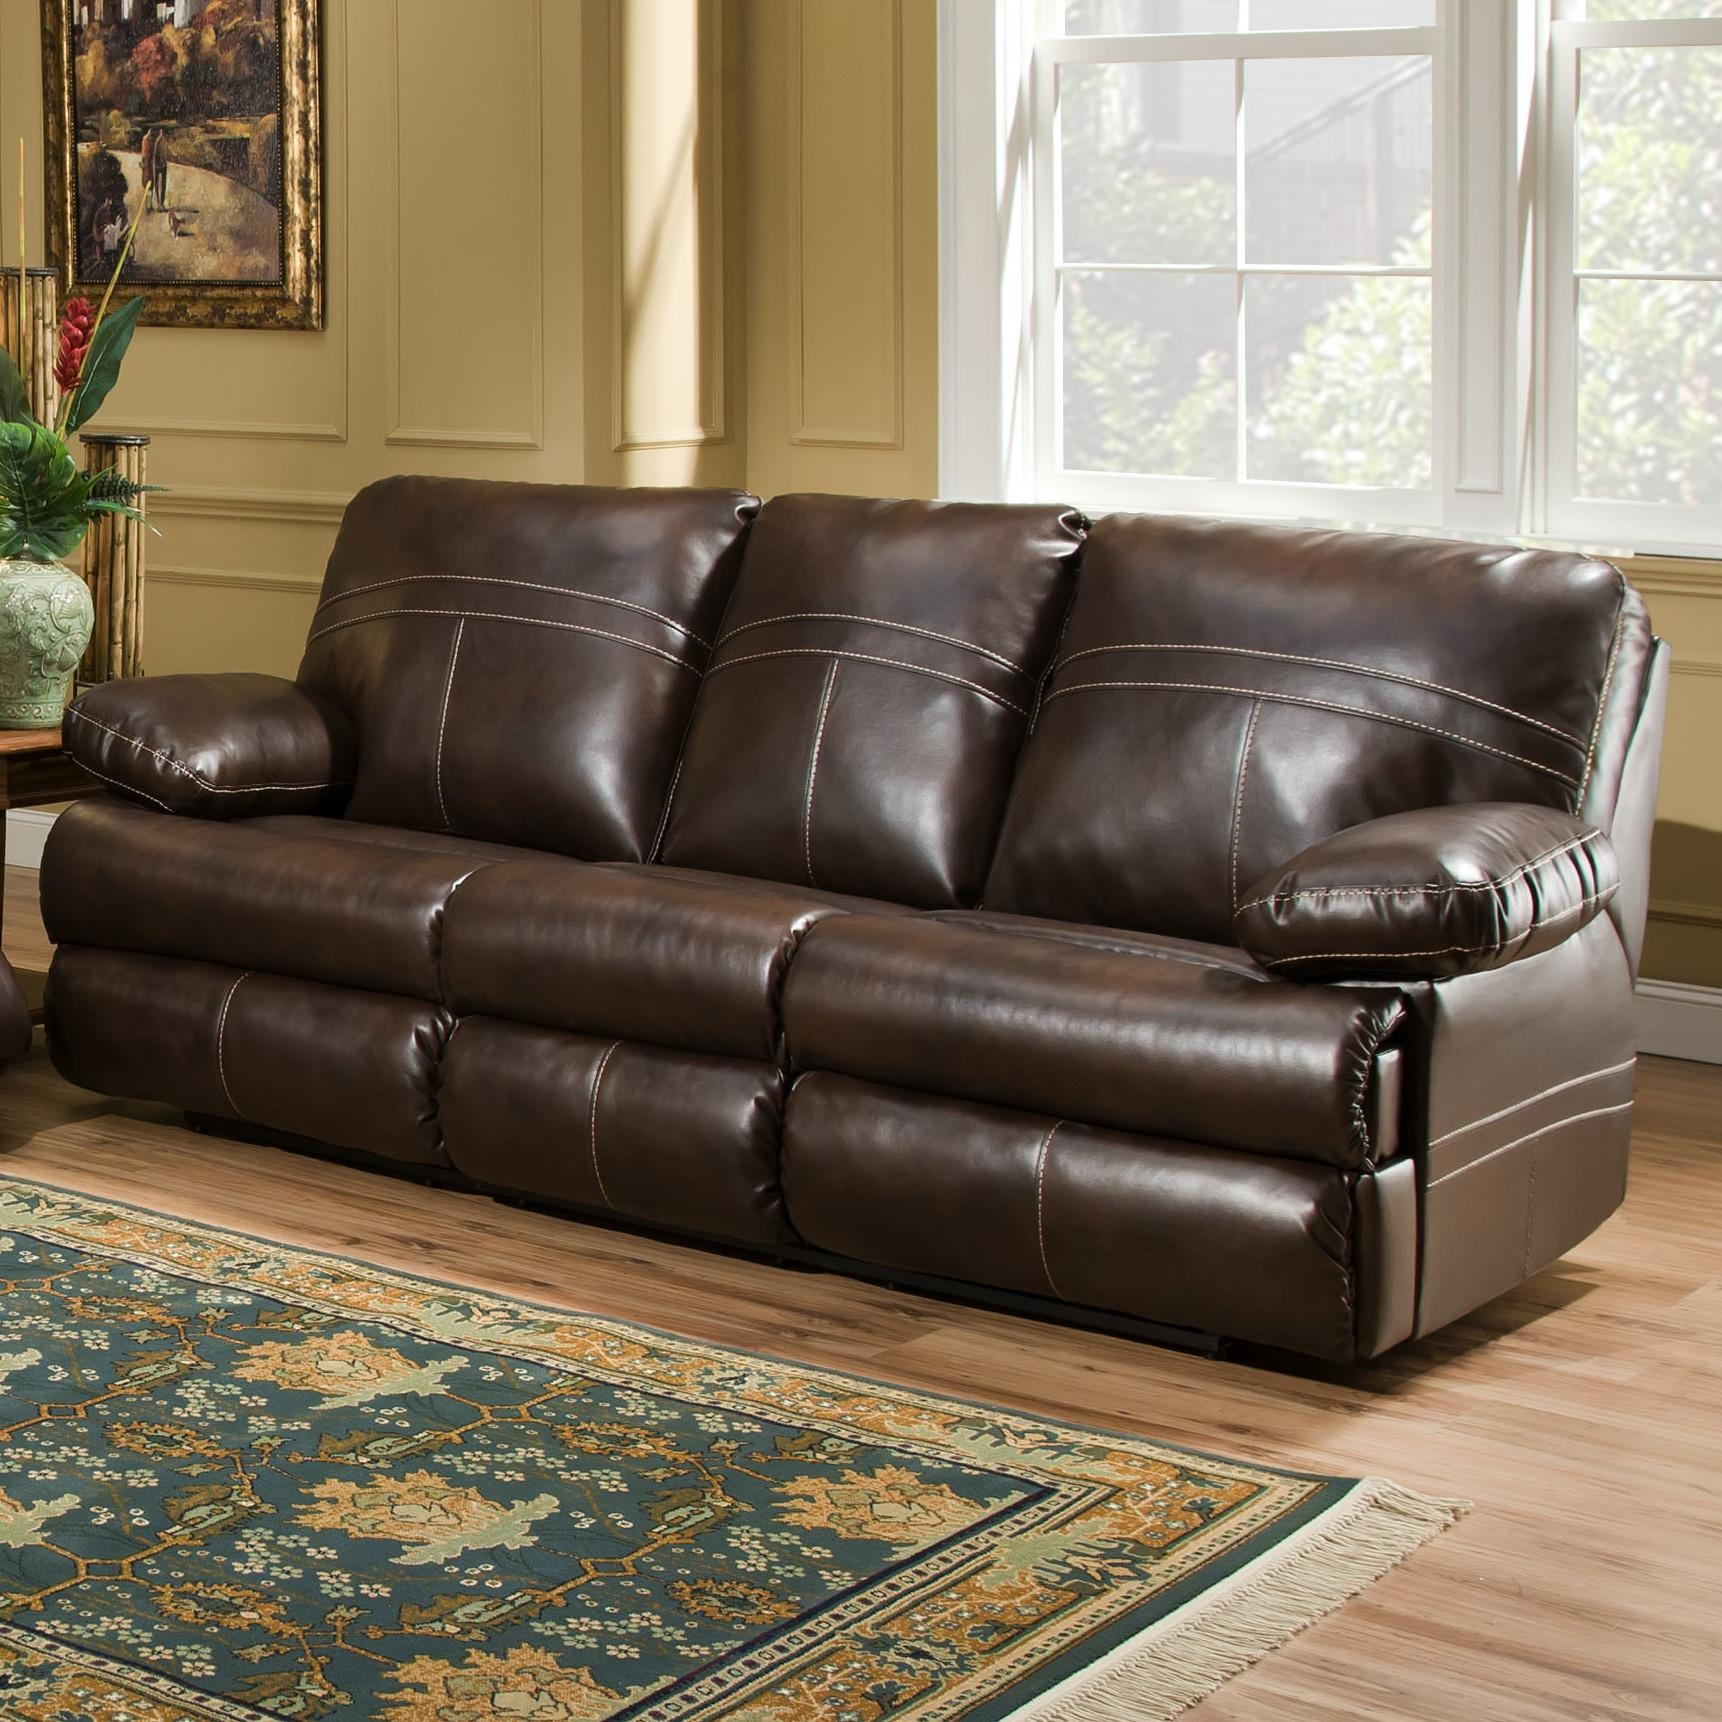 Furniture & Rug: Fancy Sectional Sleeper Sofa For Best Home Pertaining To King Size Sleeper Sofa Sectional (Image 3 of 20)